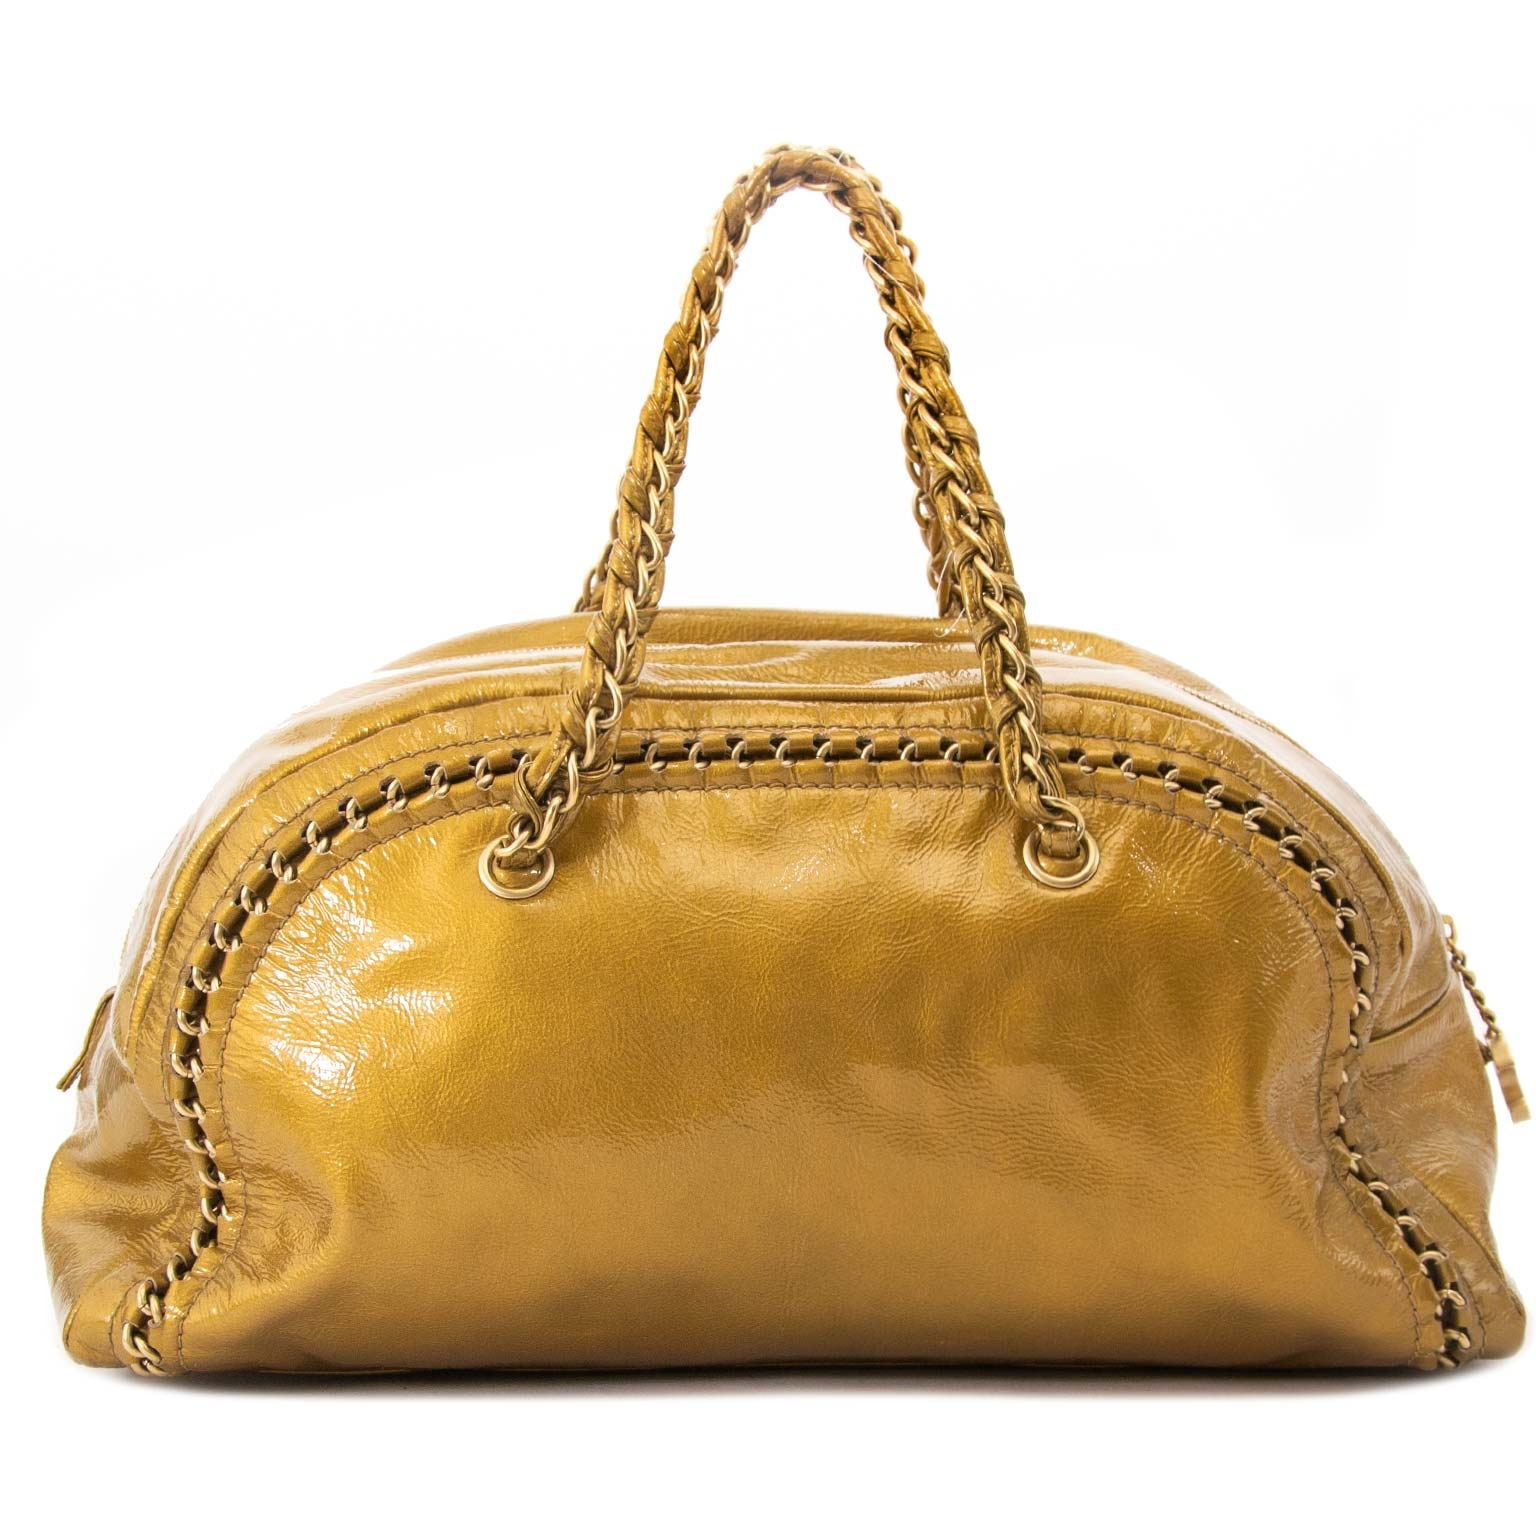 ... chanel gold patent leather bowling bag now for sale at labellov vintage  fashion webshop belgium 5f51508175060